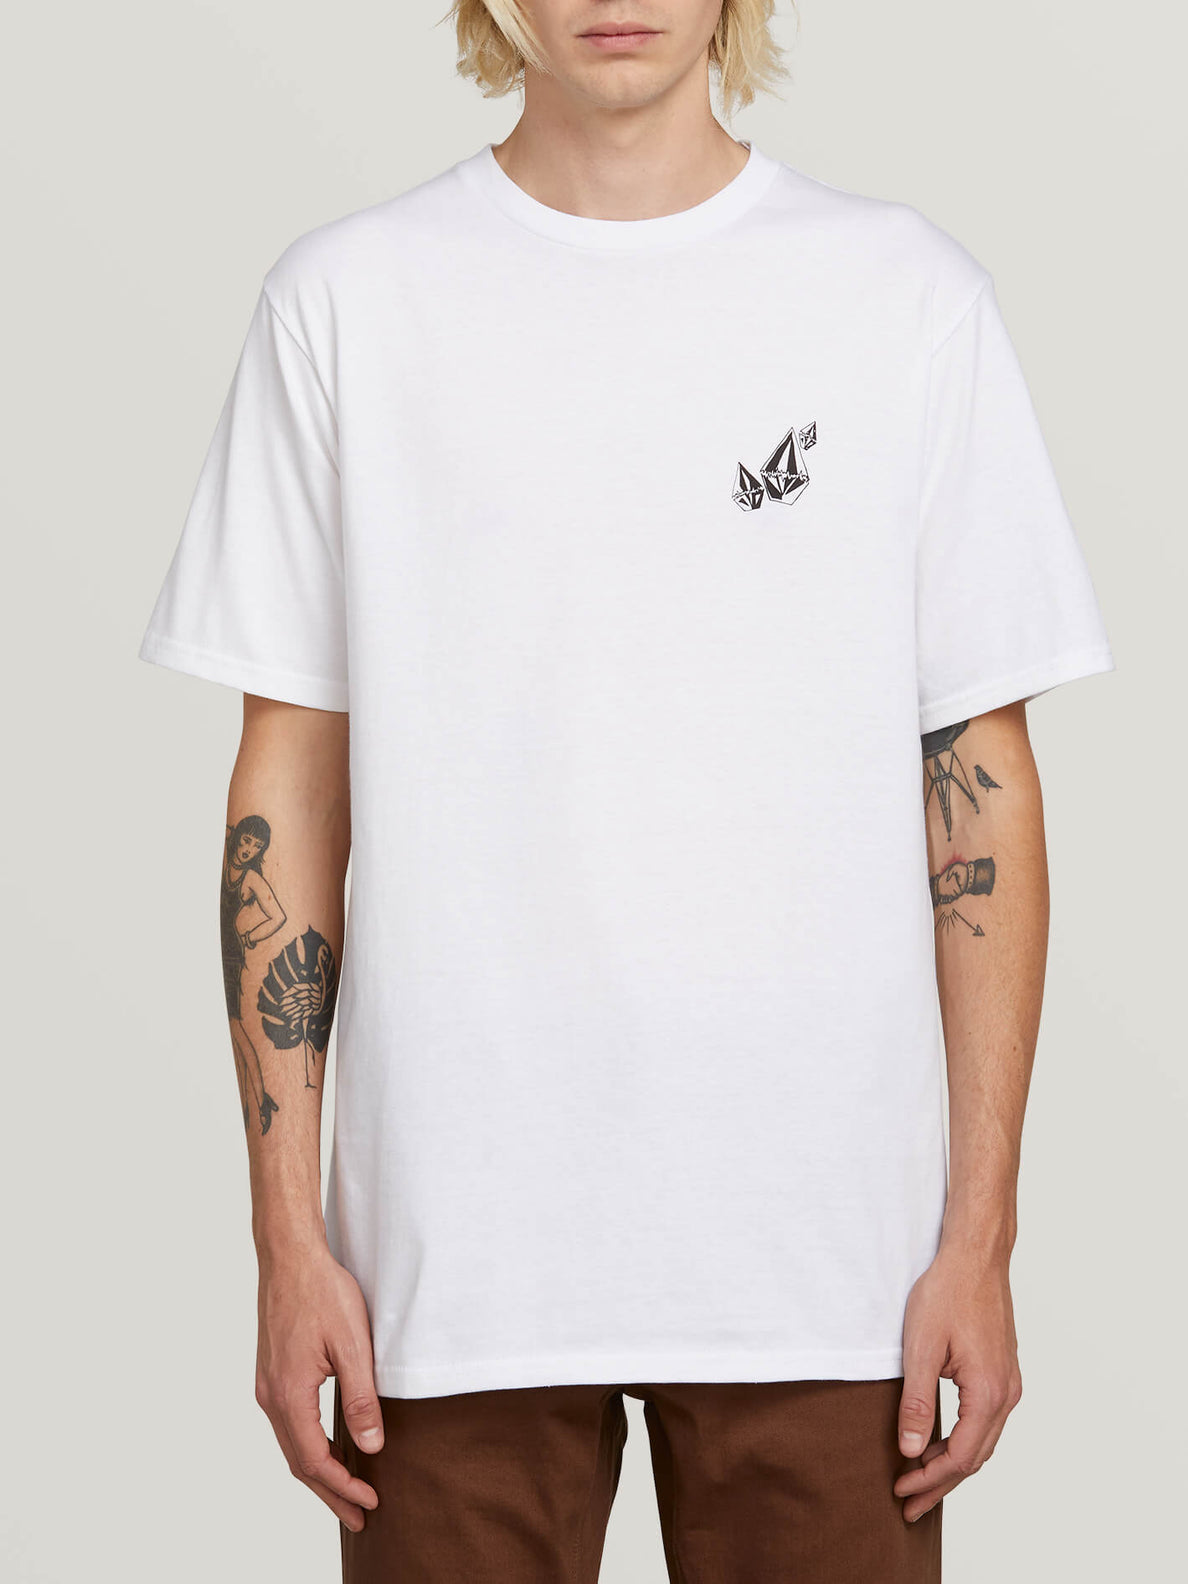 Lopez Web Short Sleeve Tee In White, Front View